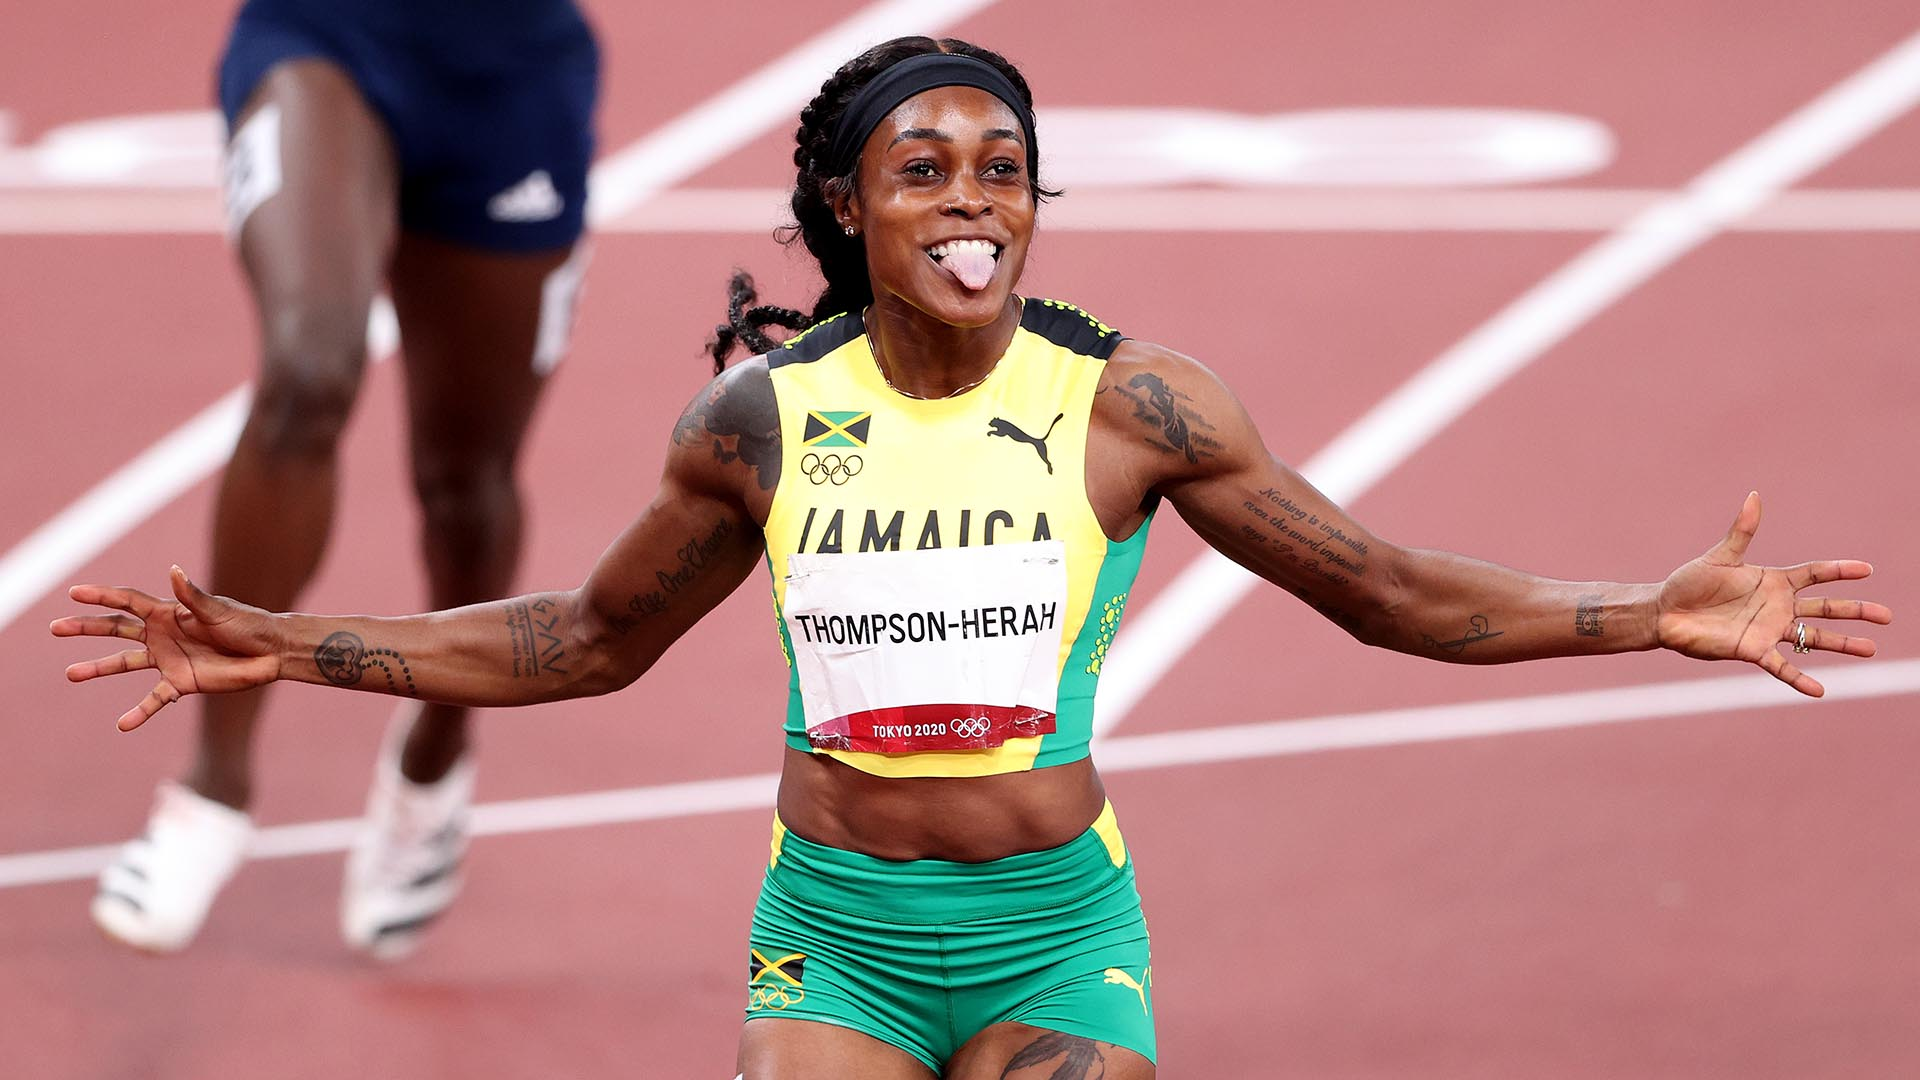 Image for Thompson-Herah attains double-double, Thomas bronze in 200m